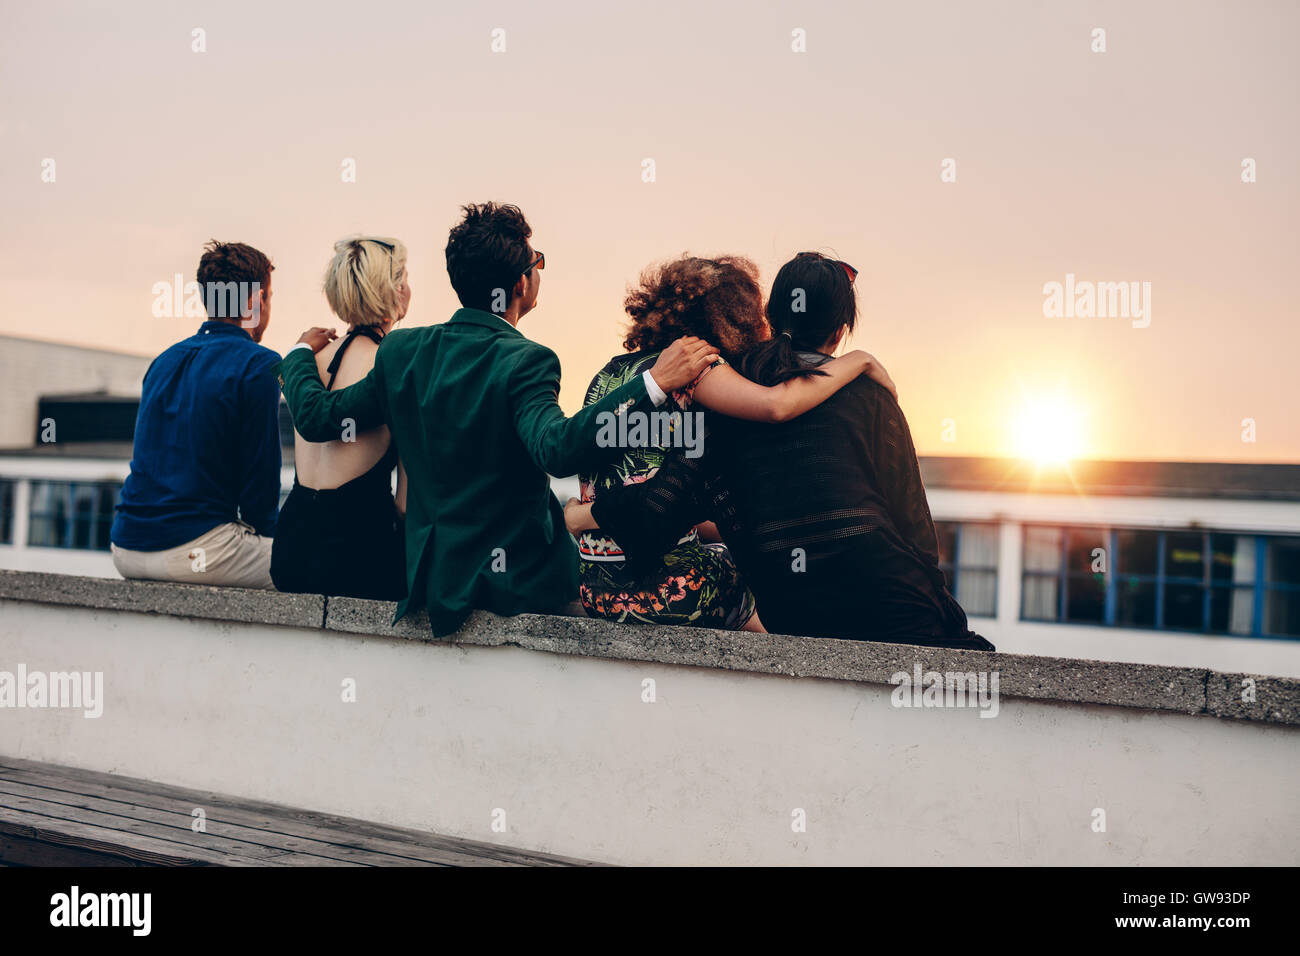 Rear view of young men and women relaxing together on rooftop and looking at sunset. Multiracial friends sitting - Stock Image